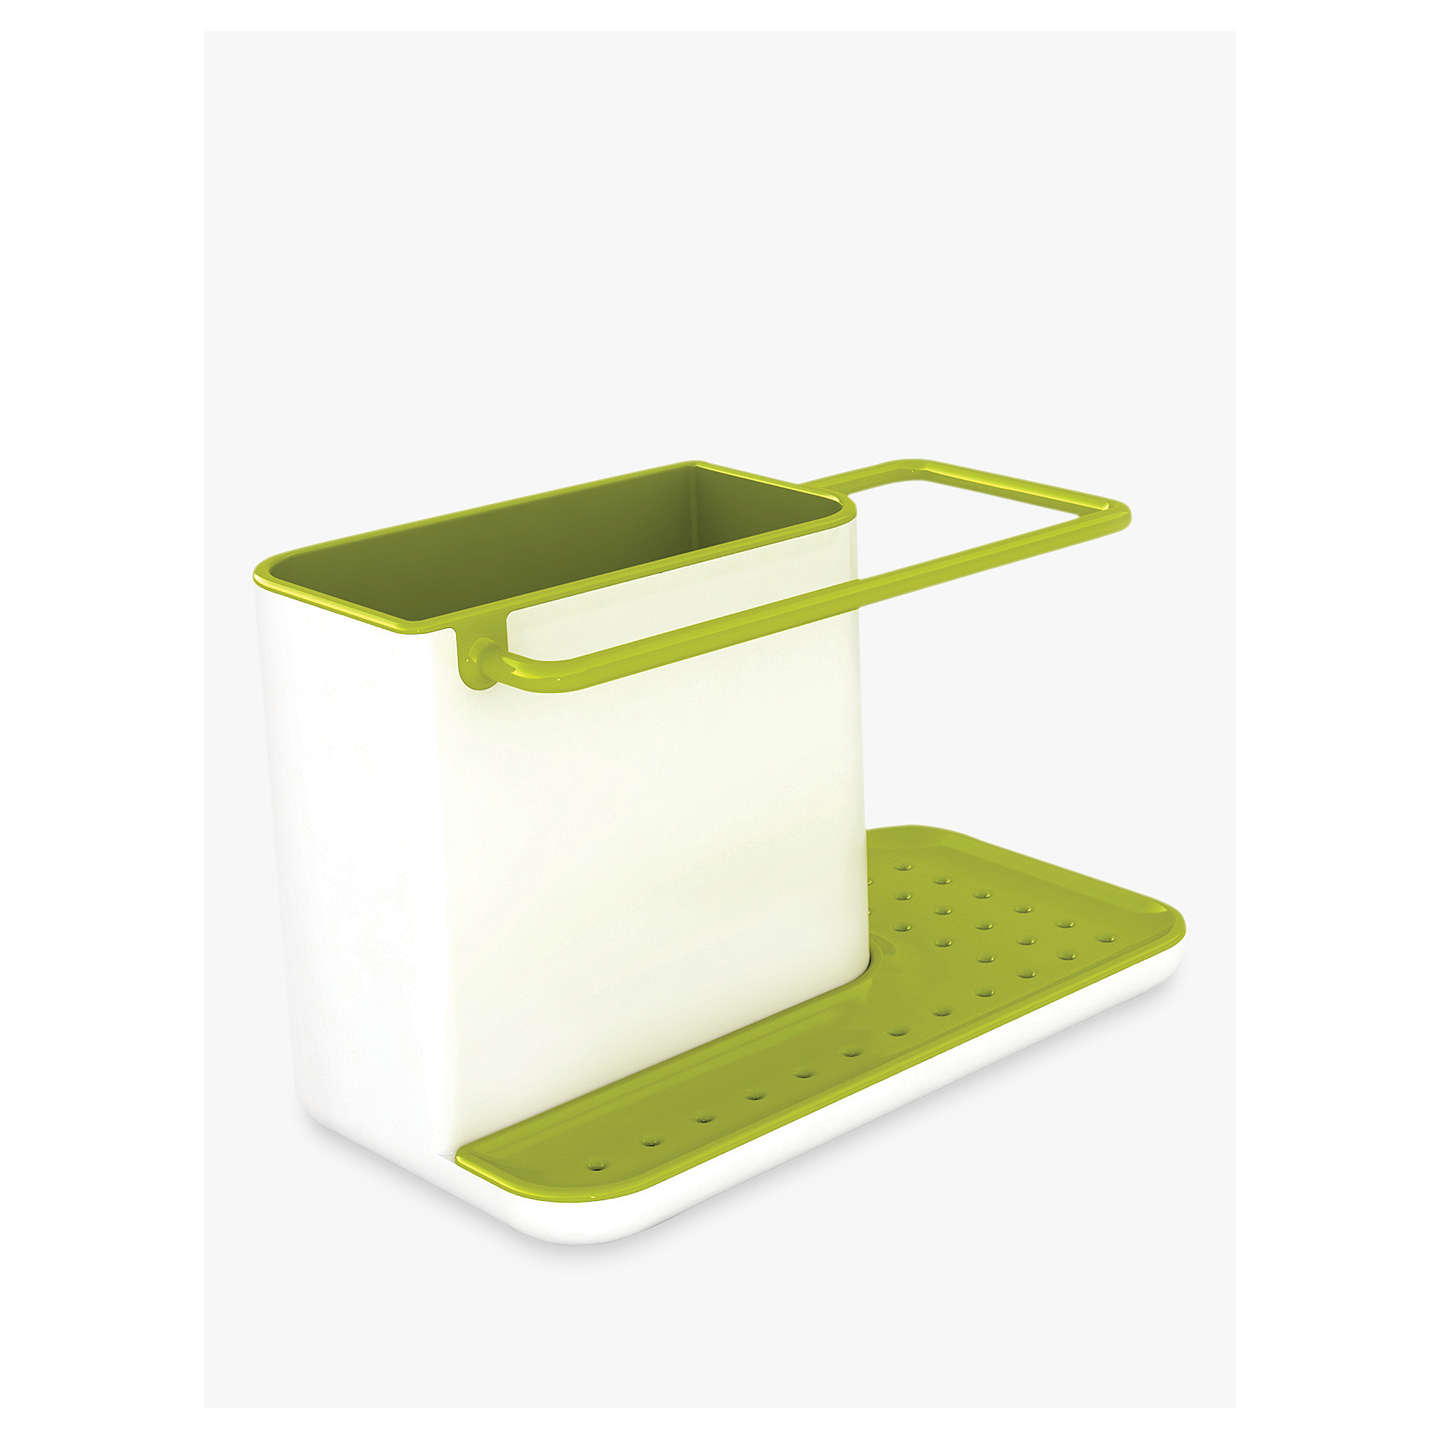 joseph joseph sink caddy white green at john lewis. Black Bedroom Furniture Sets. Home Design Ideas